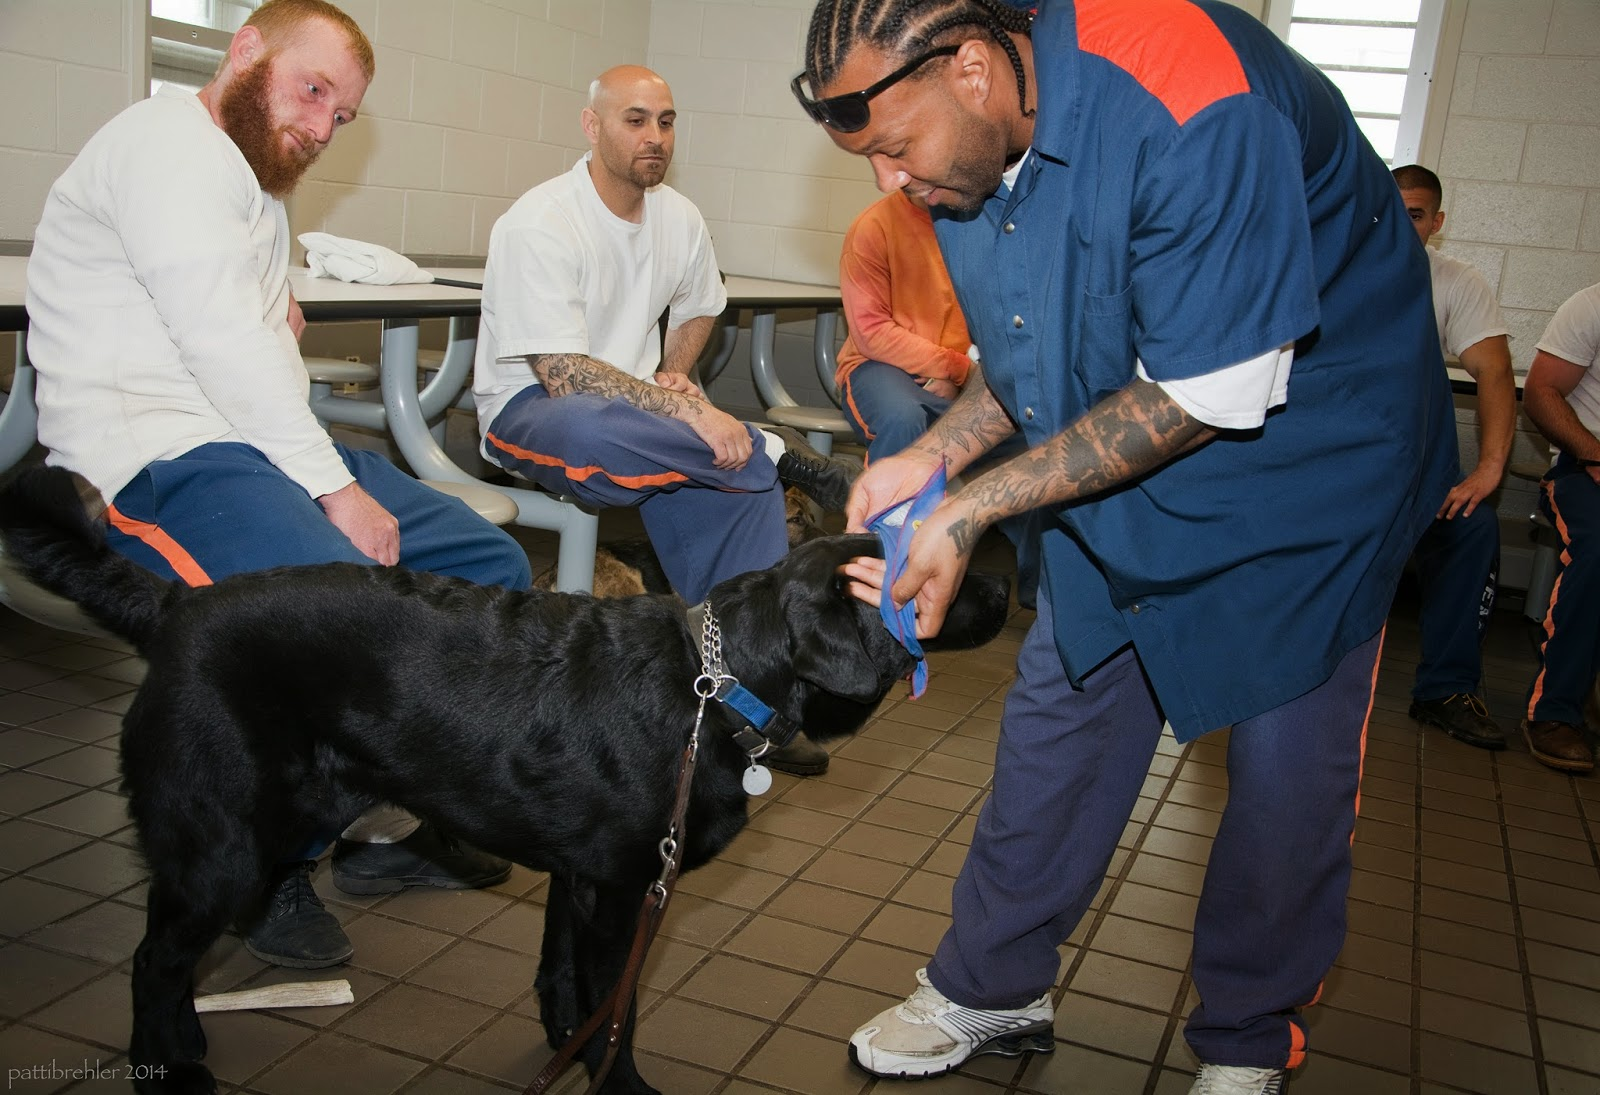 An african american man on the right side of the photo, dressed in the prison blue and orange uniform, is bending over a large black lab. The man is placing a blue bandana over the head of the puppy. Two other men are sitting on stools at the lunch table behind and to the left of the man, watching him. They have the prison blue pants on with white t-shirts.